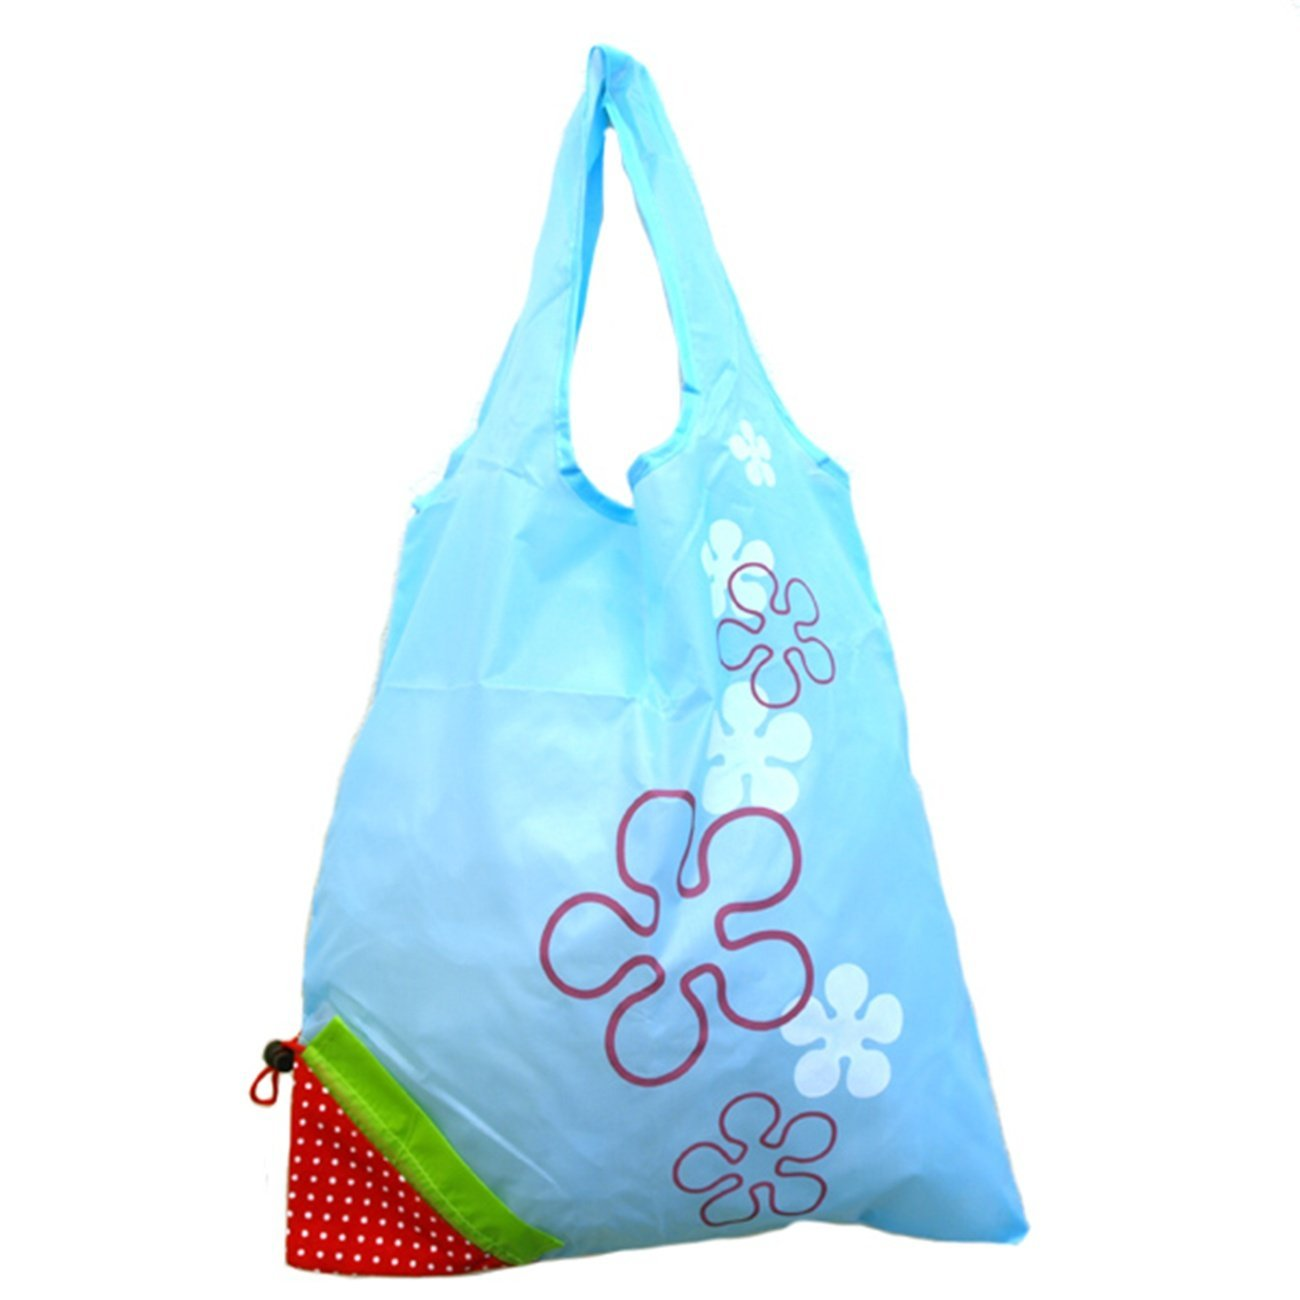 Reusable Shopping Tote Bag that Folds into a Strawberry